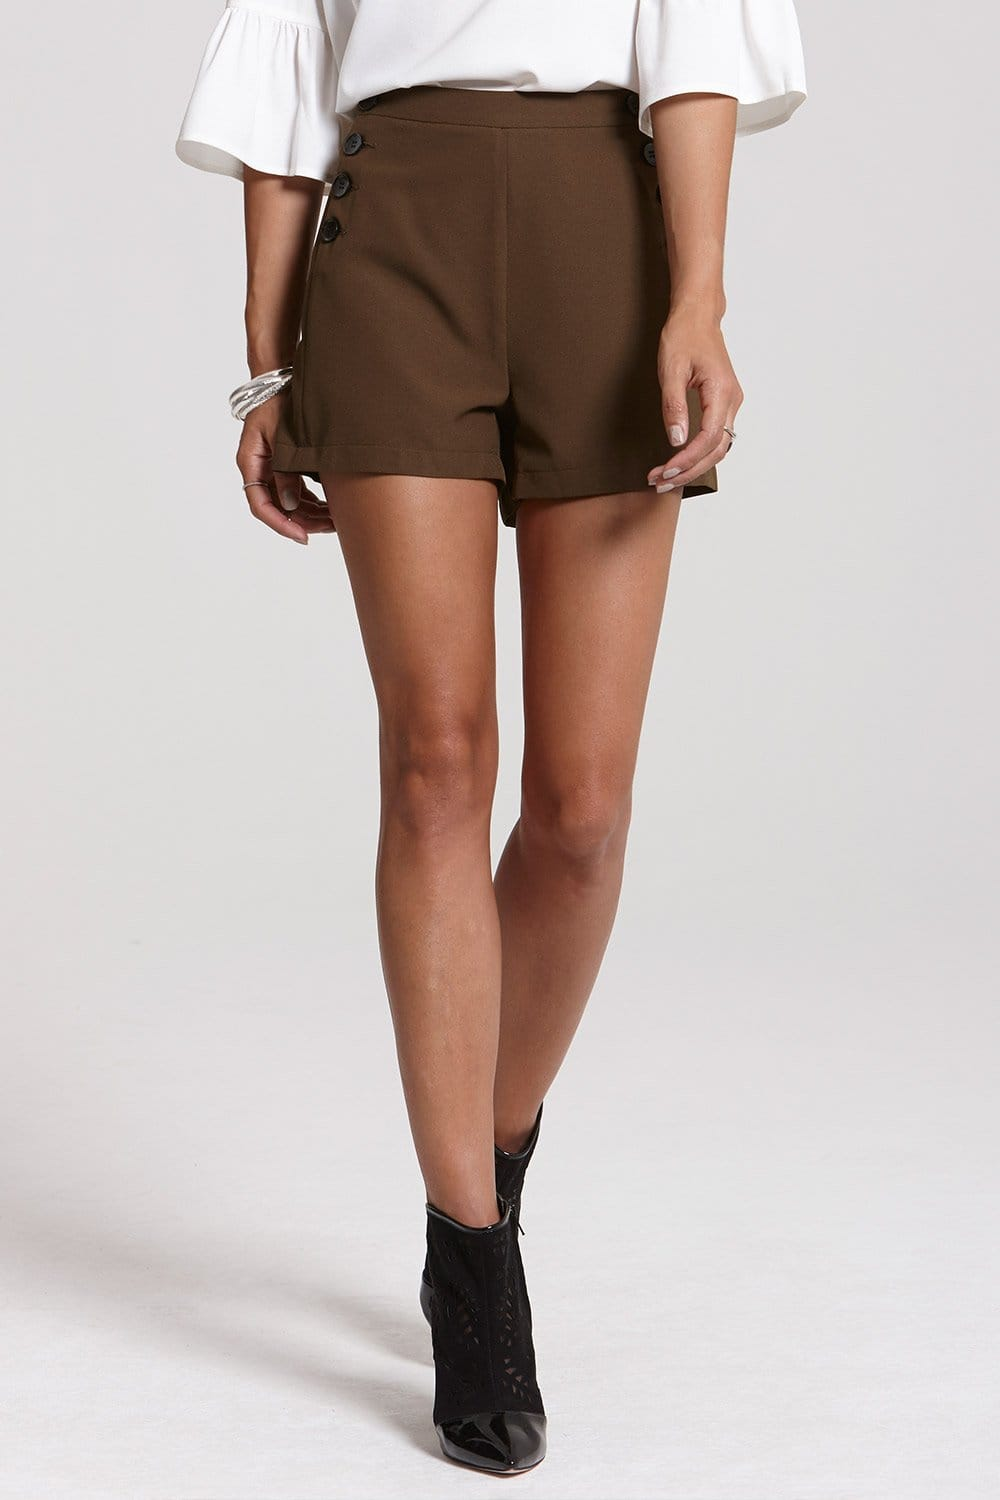 Outlet Girls On Film High Waisted Khaki Button Shorts - Outlet ...